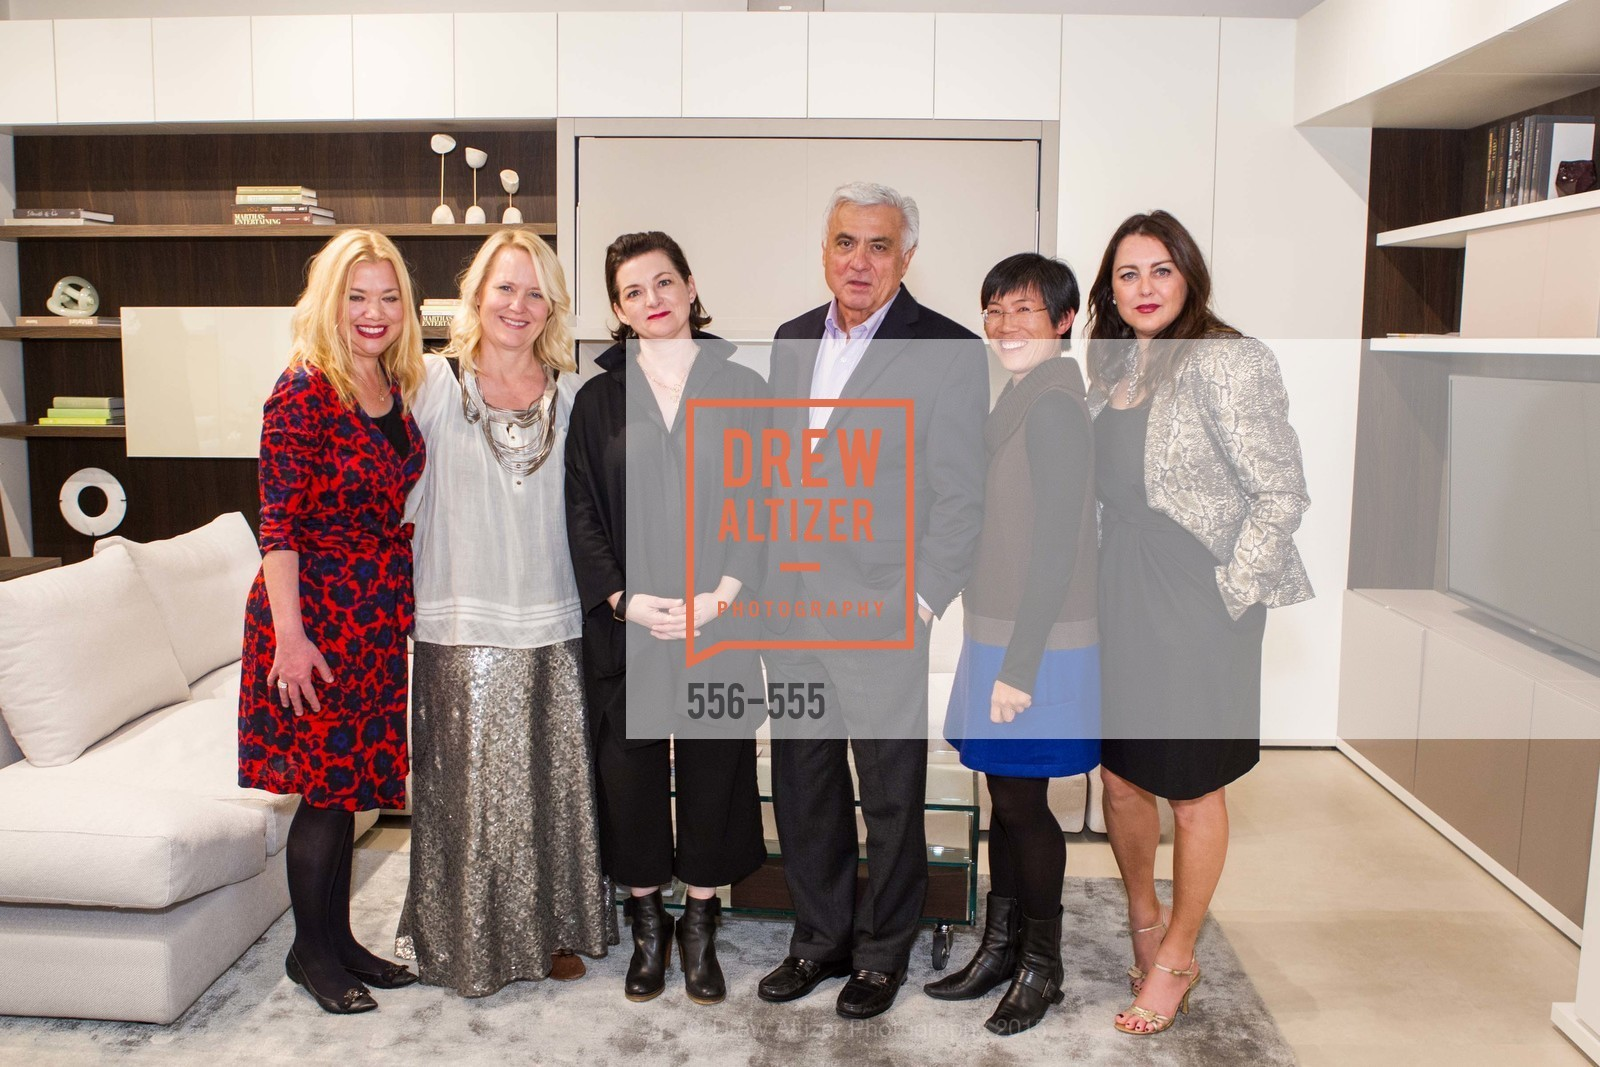 Eva Eastman, Lisa Blecker, Alisa Carroll, Alf Nucifora, Lydia Lee, Amelia Hyde, SFC&G Real Estate Survey Reveal, Resource Furniture, November 19th, 2015,Drew Altizer, Drew Altizer Photography, full-service agency, private events, San Francisco photographer, photographer california